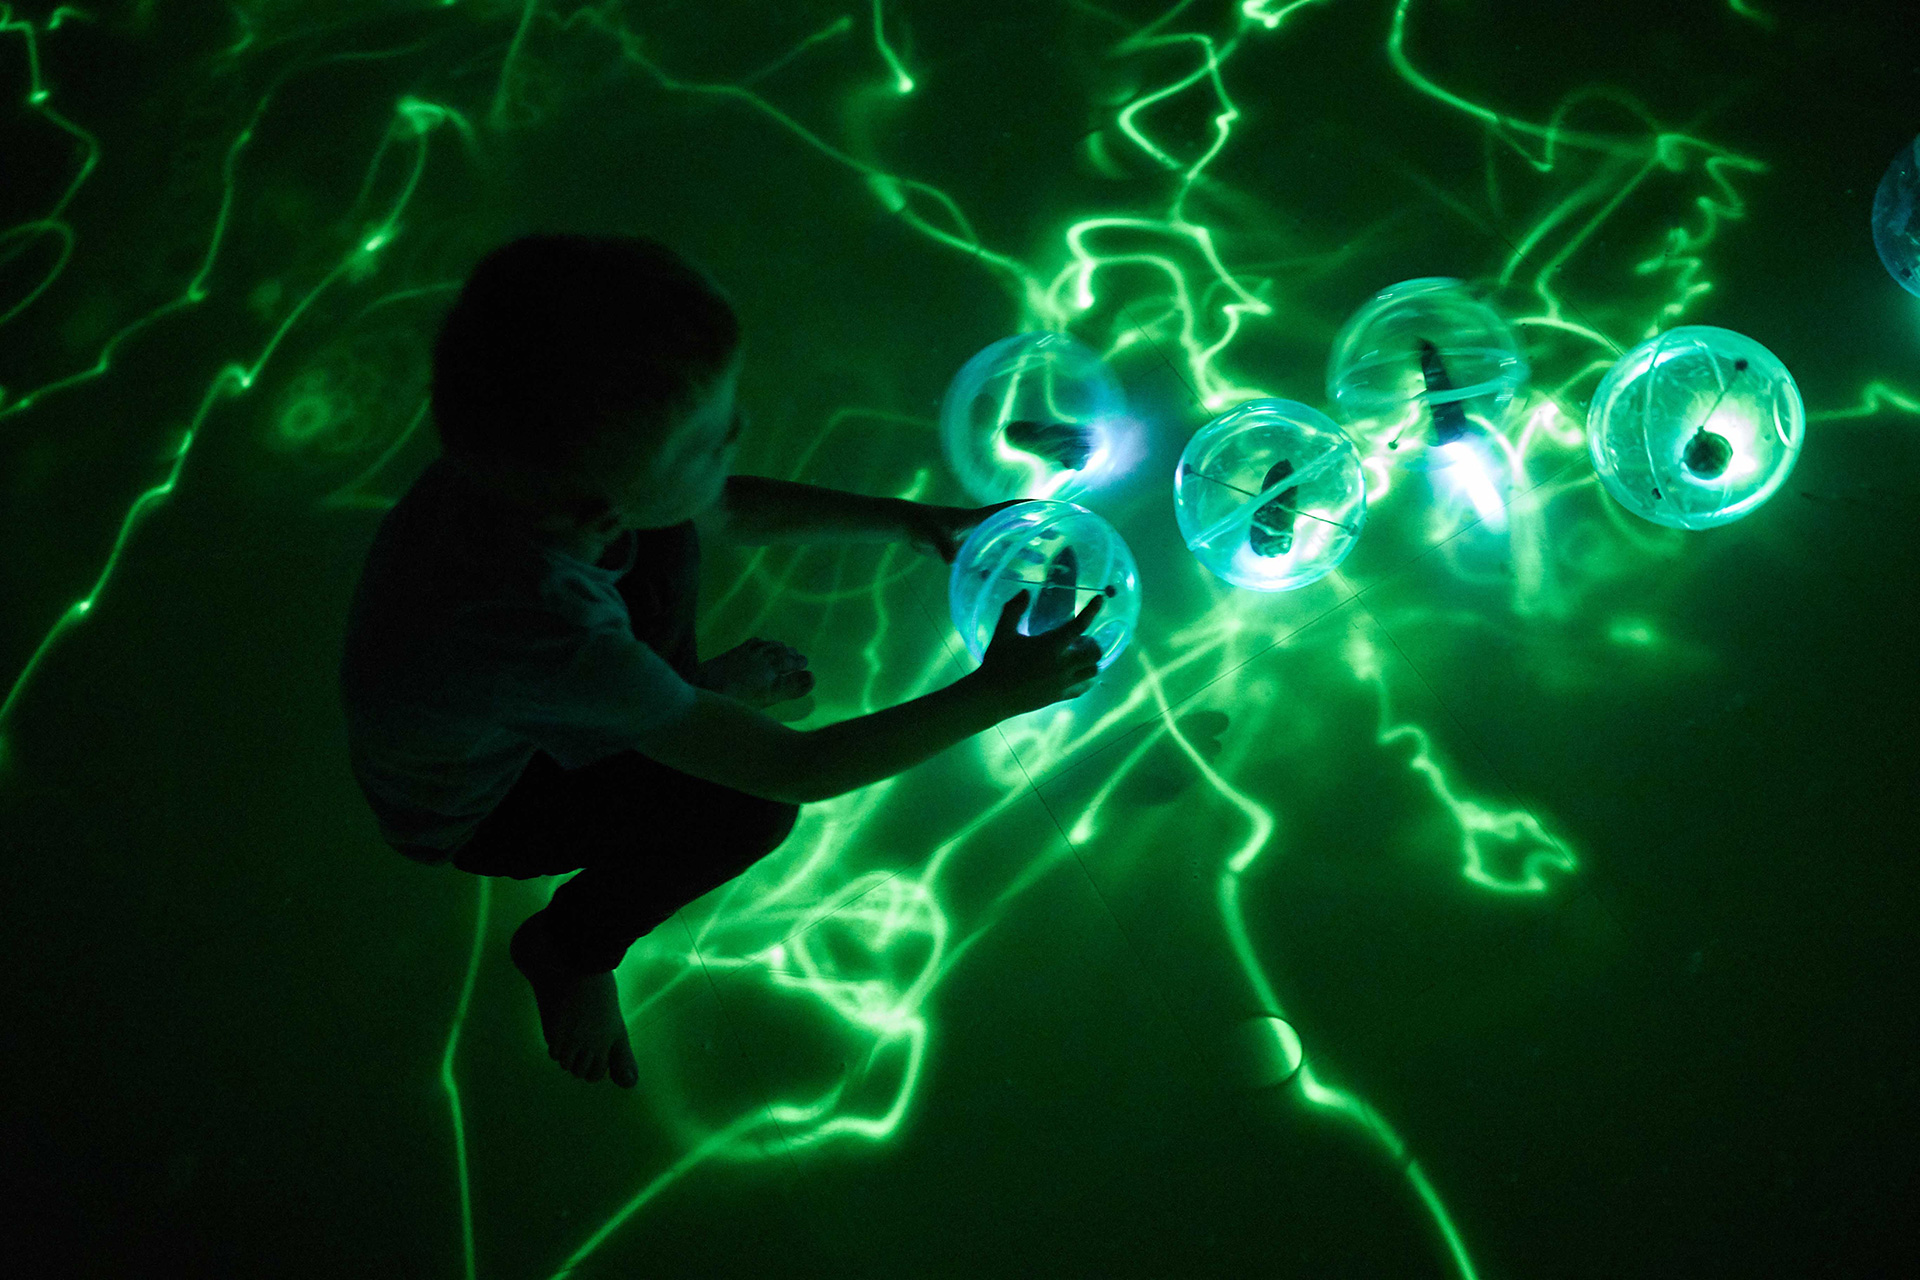 Lolas – tiny, glowing jellyfish type organisms | Presence | Daan Roosegaarde | Groninger Museum| STIRworld